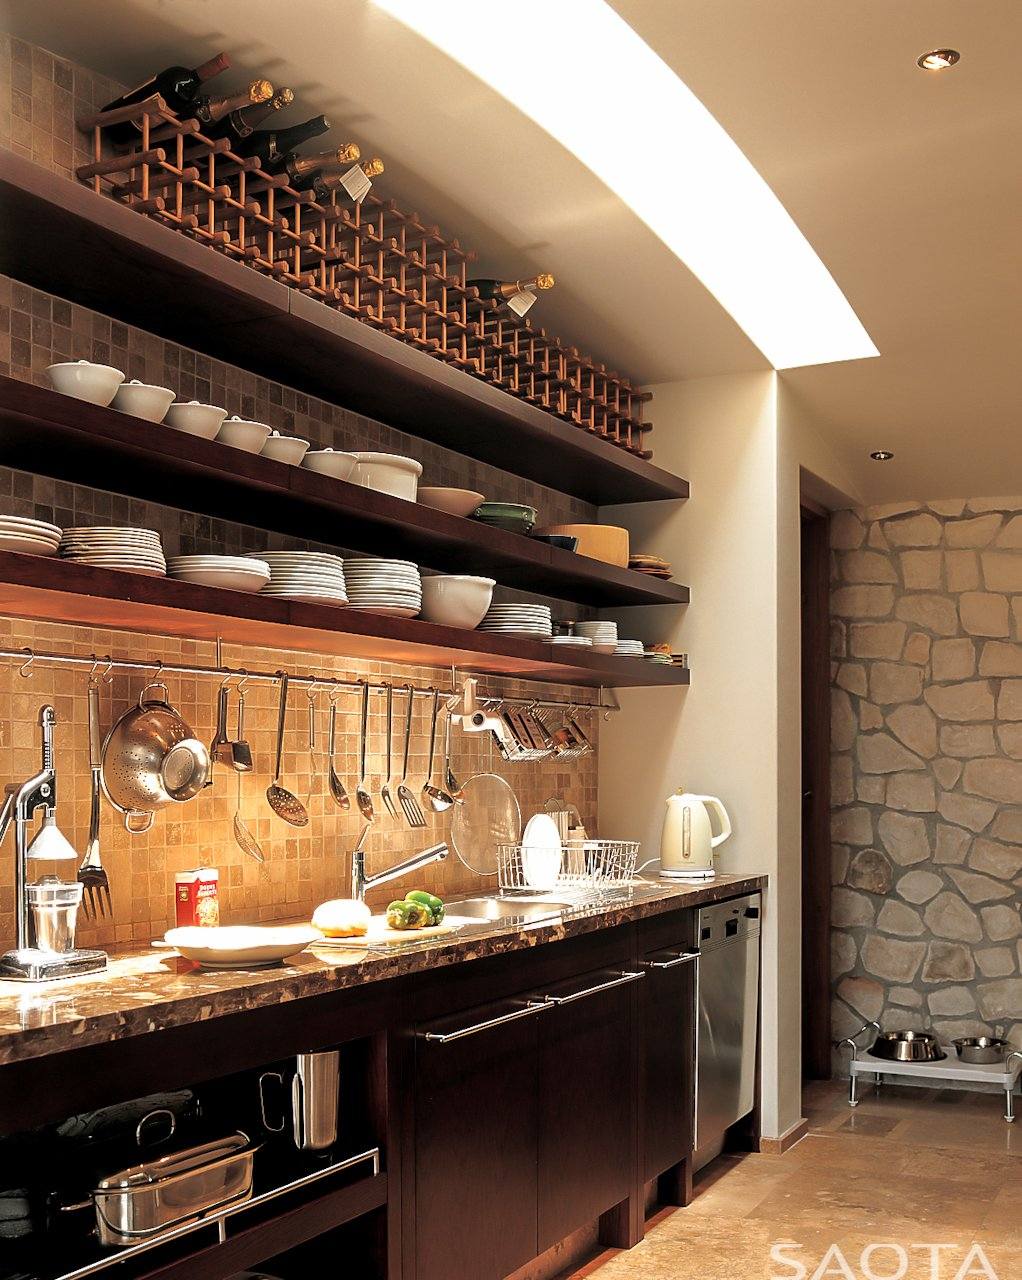 The main kitchen counter features dark marble over dark wood cabinetry, with built-in shelving above tile backsplash, including wine rack at top.